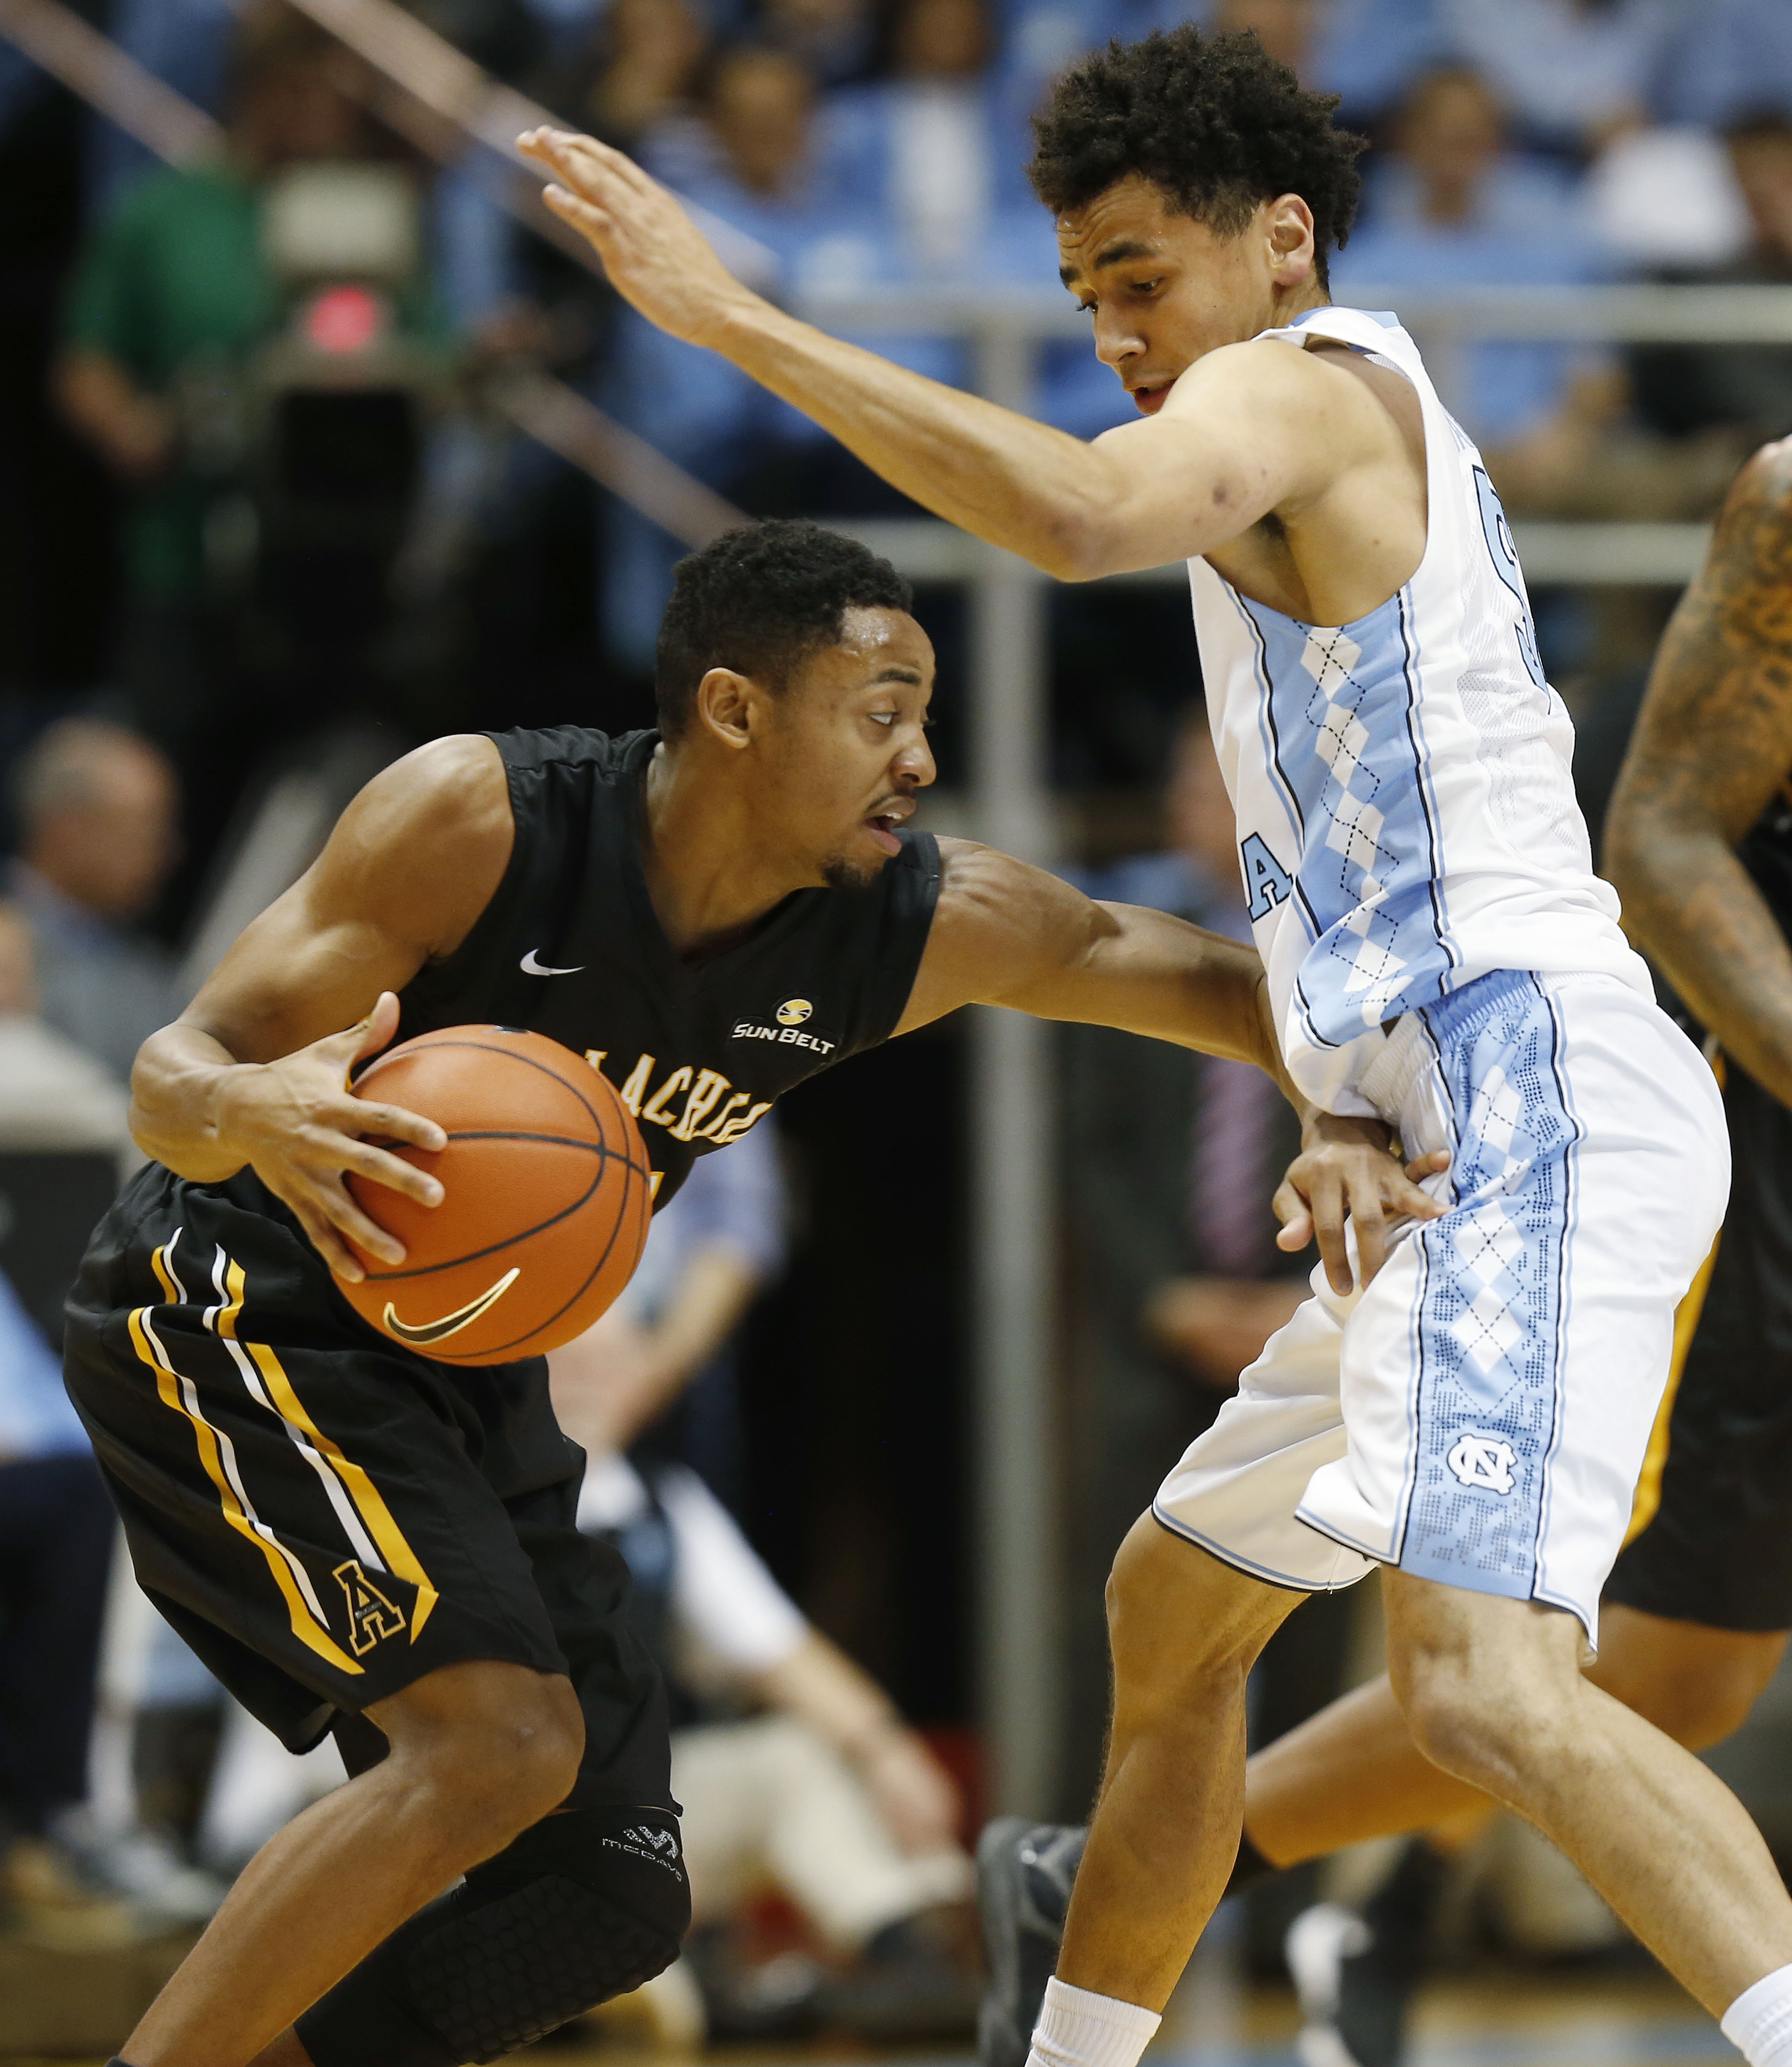 North Carolina's Marcus Paige, right, defends Appalachian State's Frank Eaves during the first half of an NCAA college basketball game Monday, Dec. 21, 2015, in Chapel Hill, N.C. (AP Photo/Ellen Ozier)